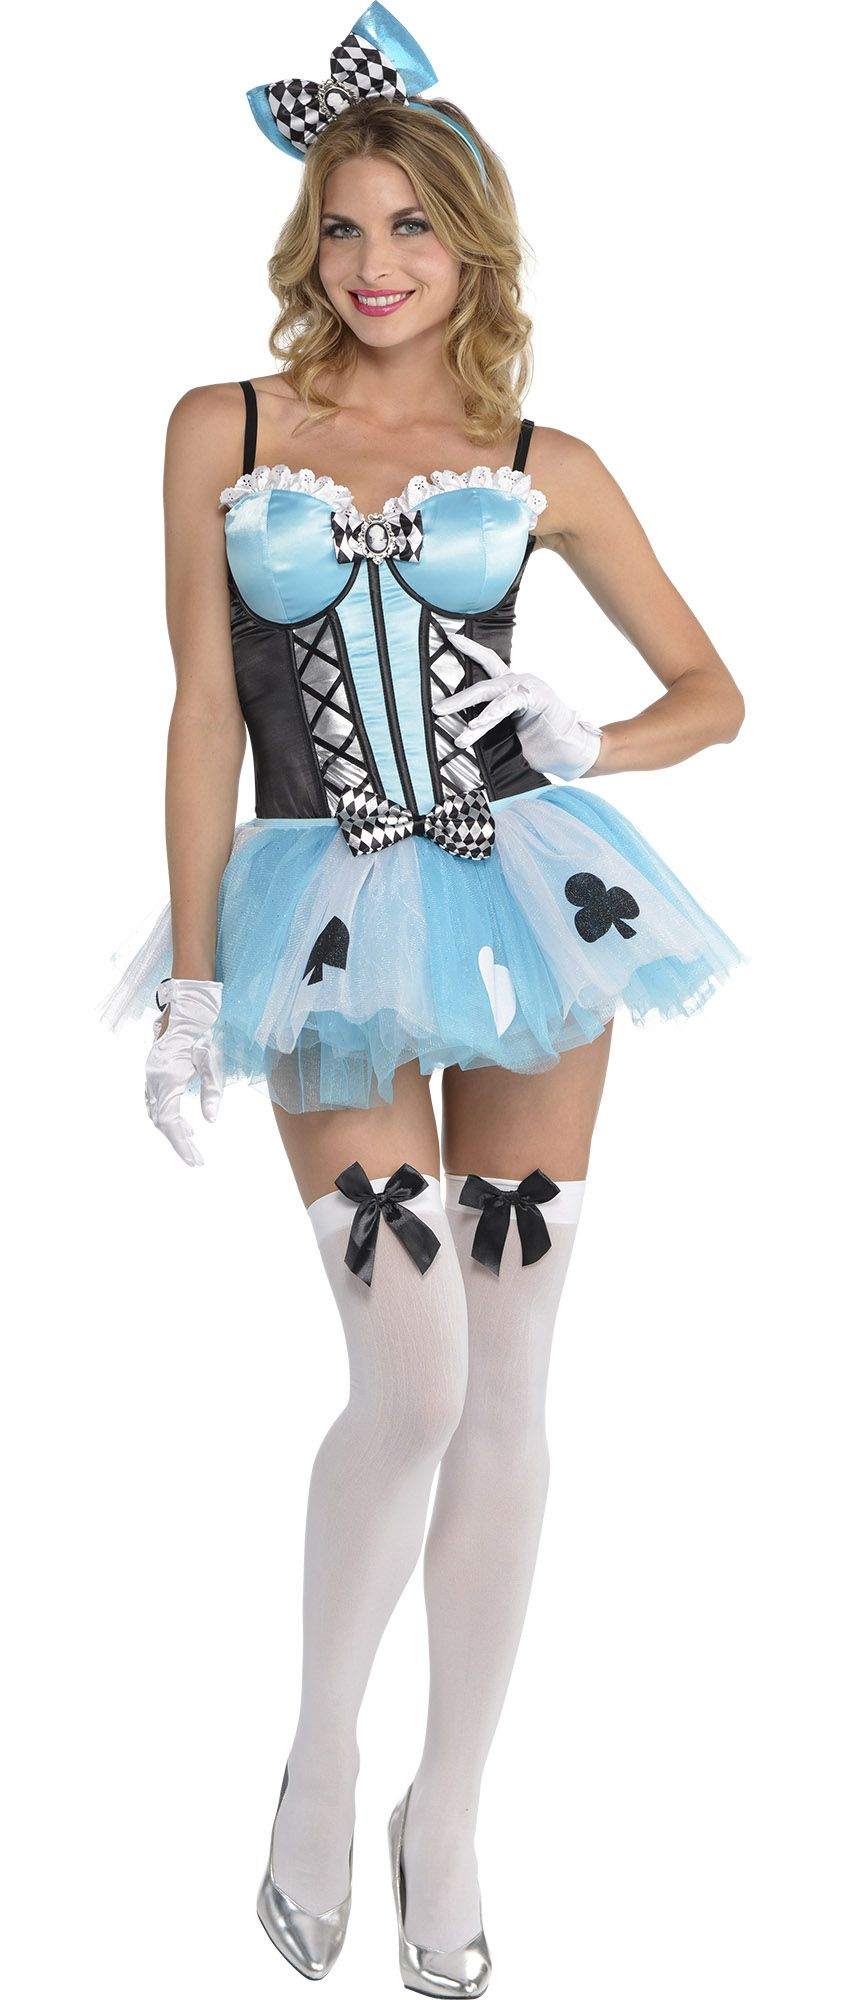 Create Your Own Look - Female Alice in Wonderland #1